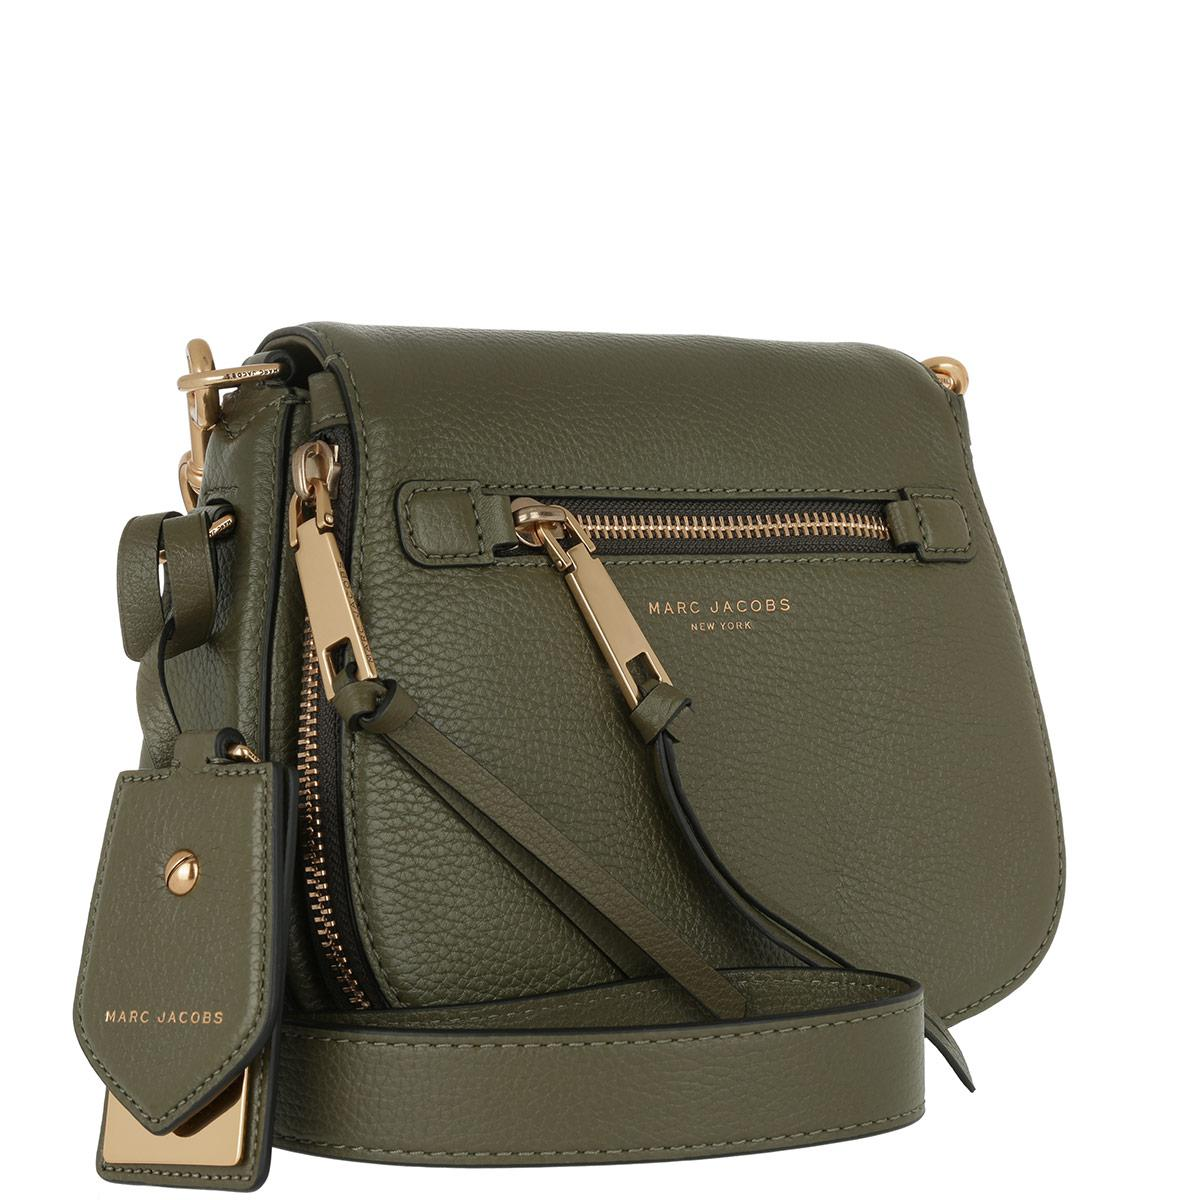 2cb17b6e62 Marc Jacobs Recruit Saddle Bag Leather Army Green in Green - Lyst